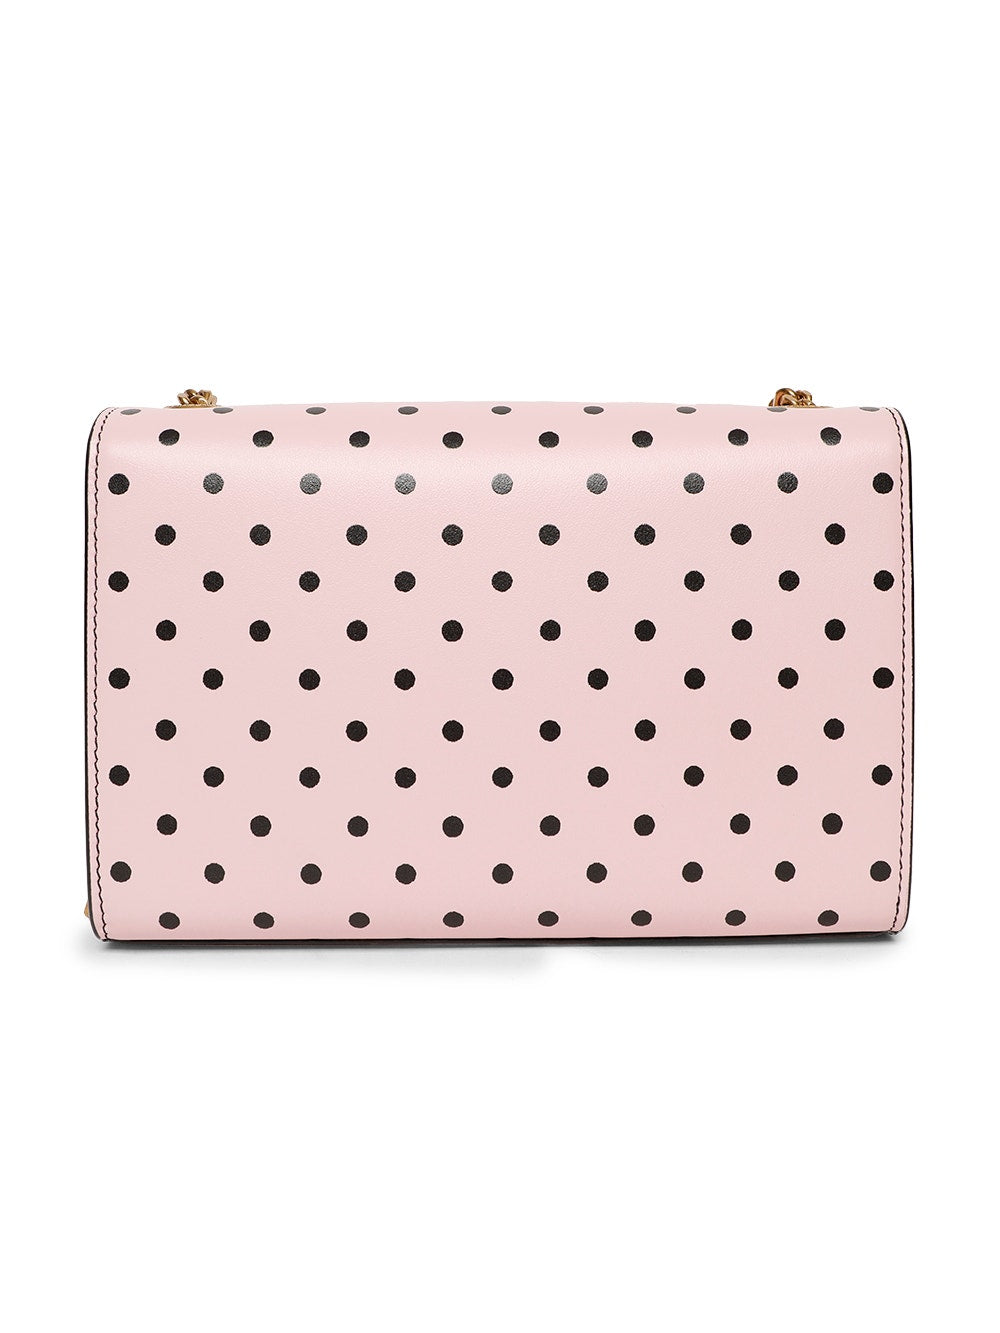 Pink & Black Polka Dot Small Kate Bag